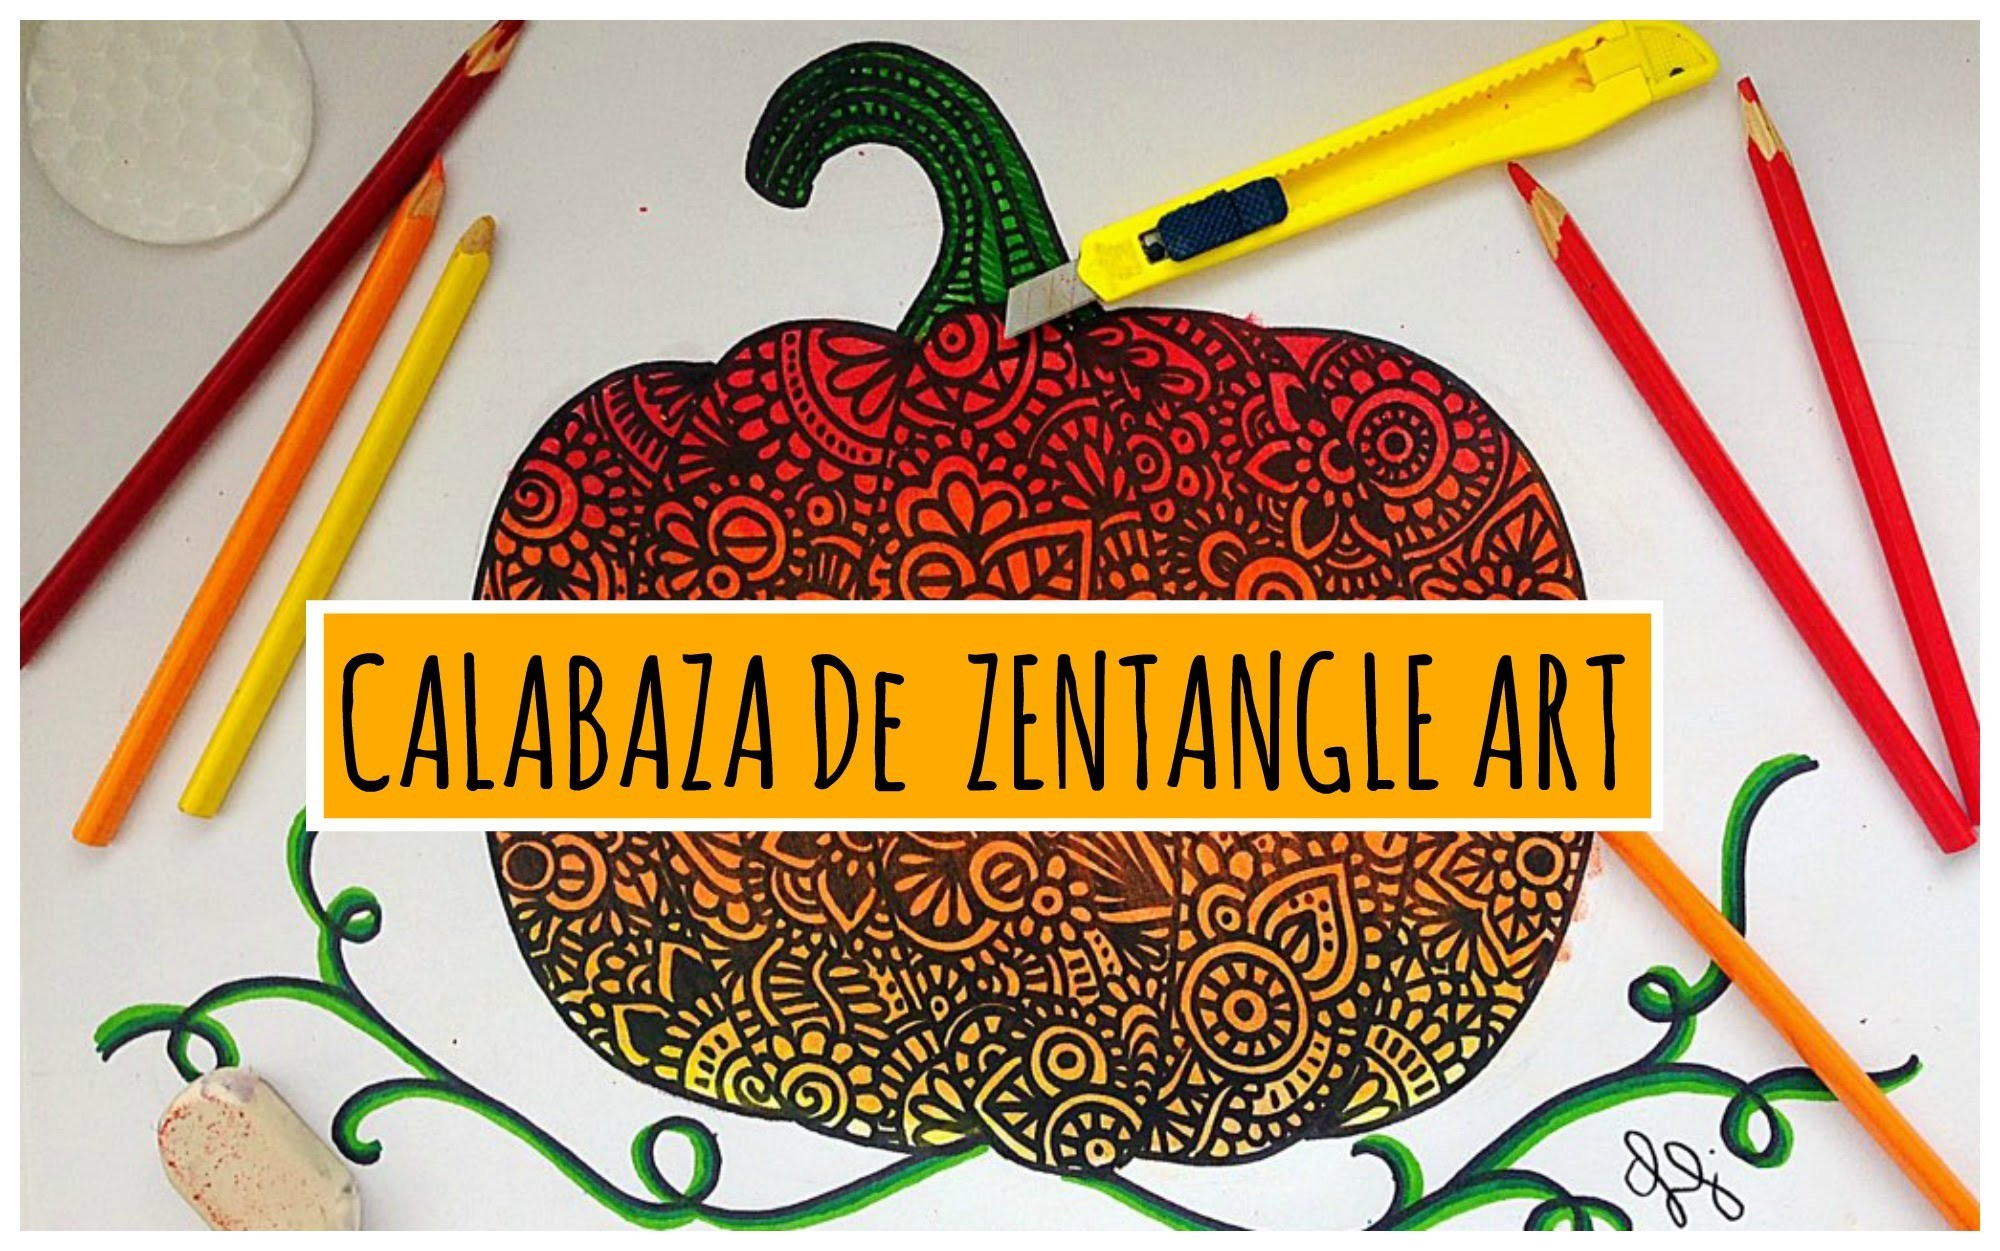 Calabaza de Zentangle Art